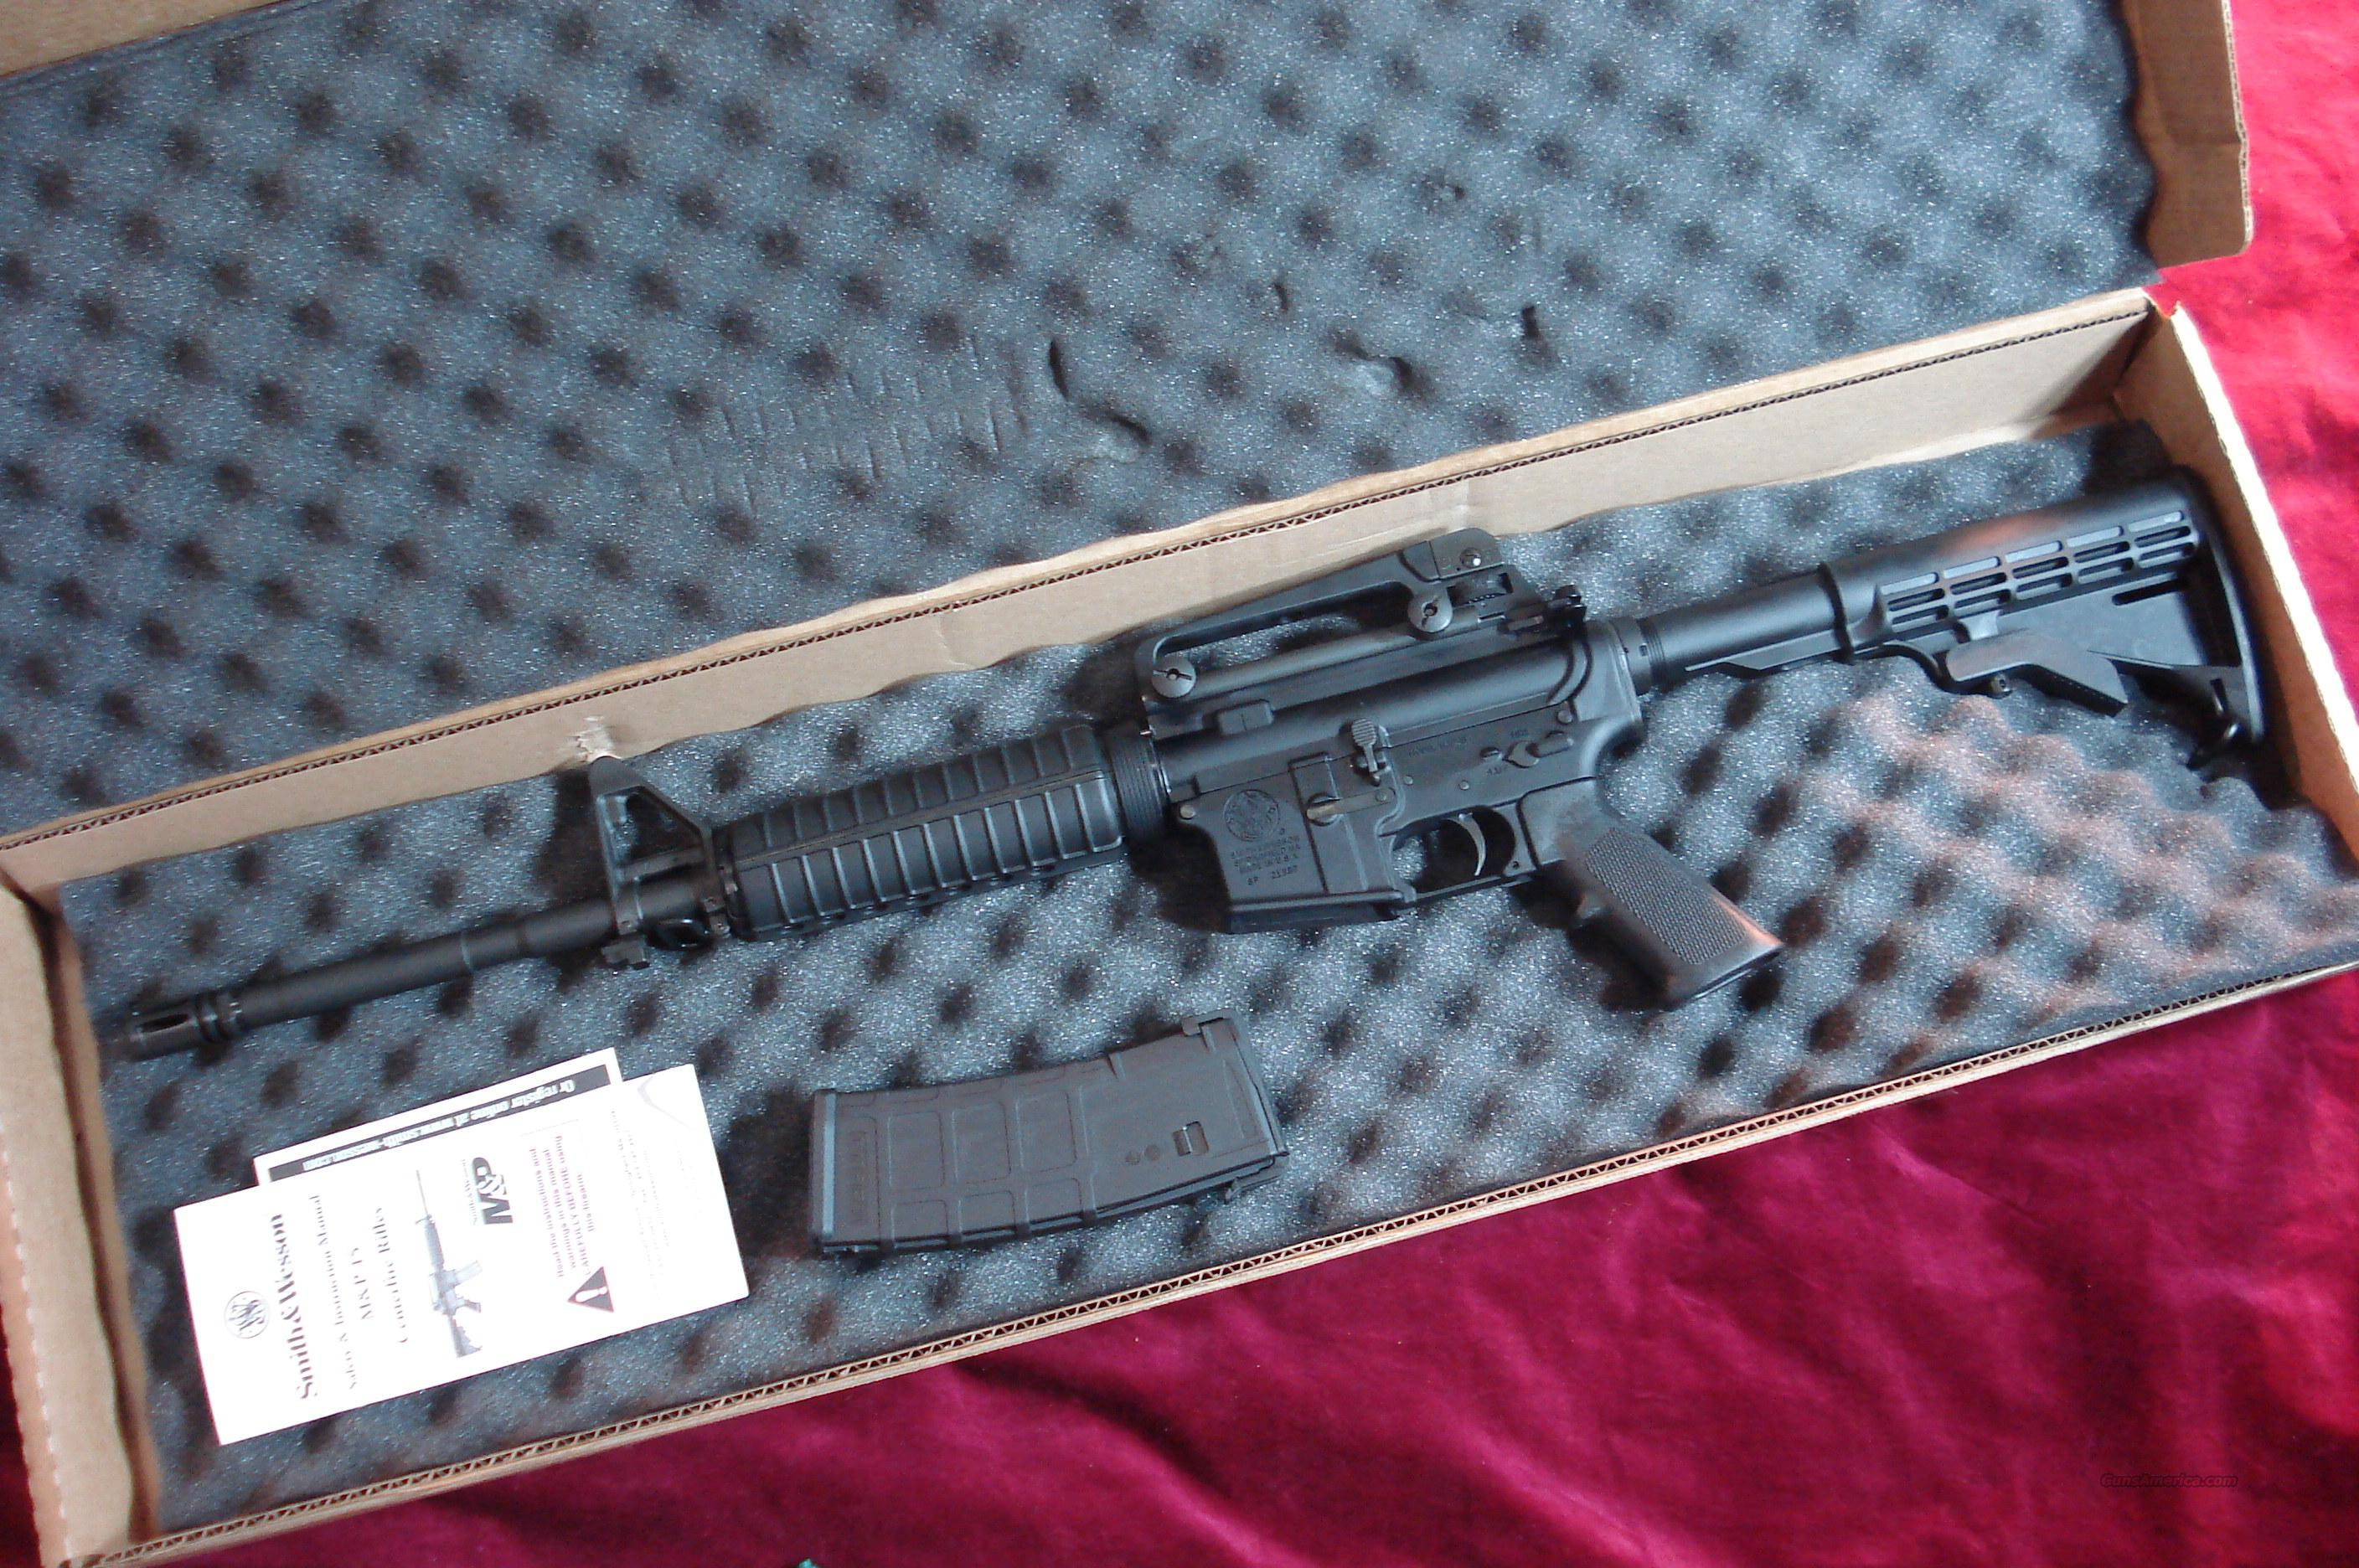 SMITH AND WESSON M&P 15 M4A3 5.56/223CAL. NEW   Guns > Rifles > Smith & Wesson Rifles > M&P